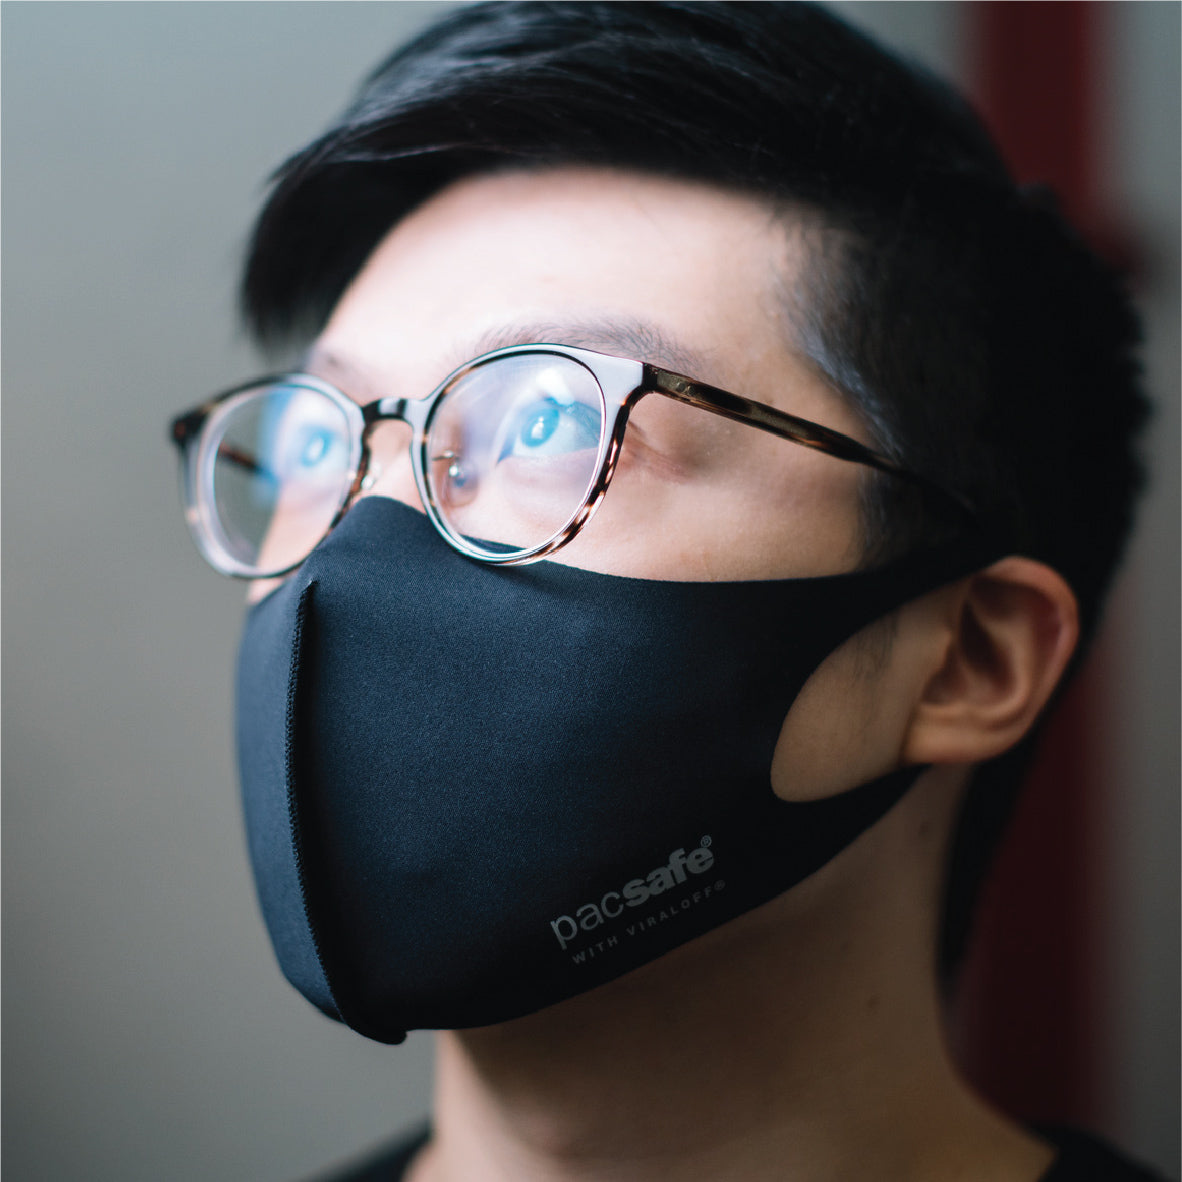 Pacsafe Viraloff Face Mask - Black image 3